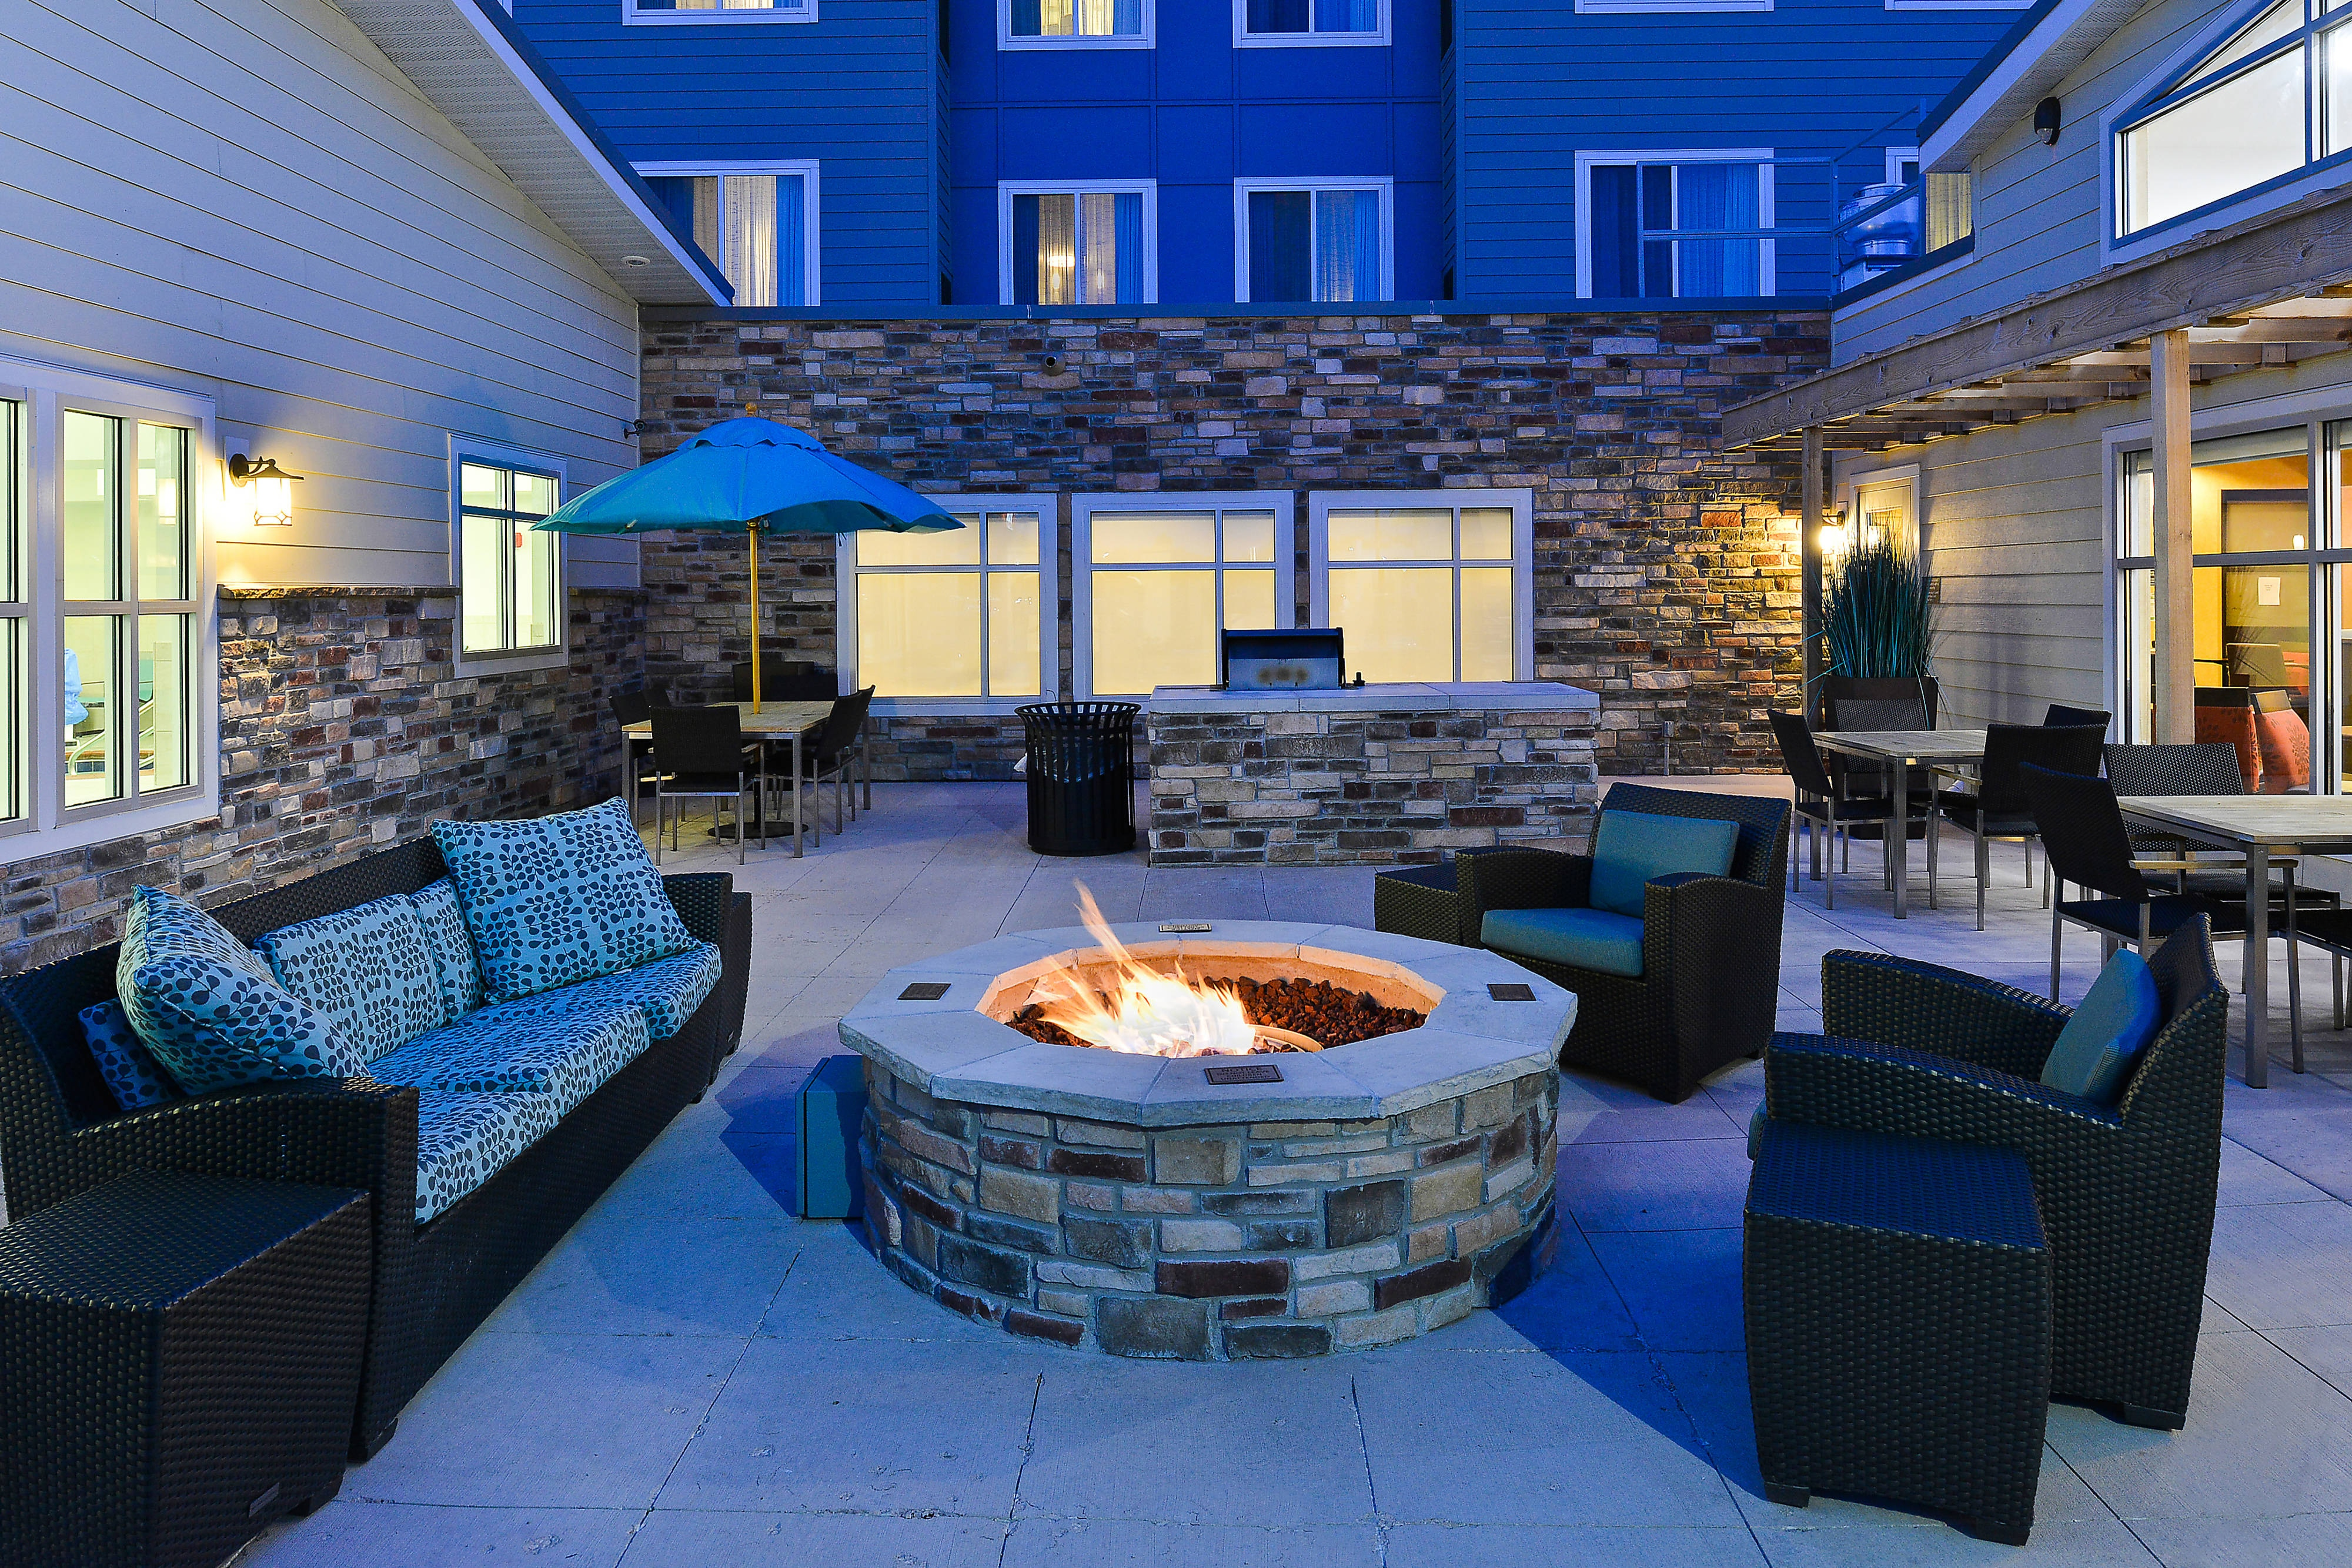 Firepit and Grill